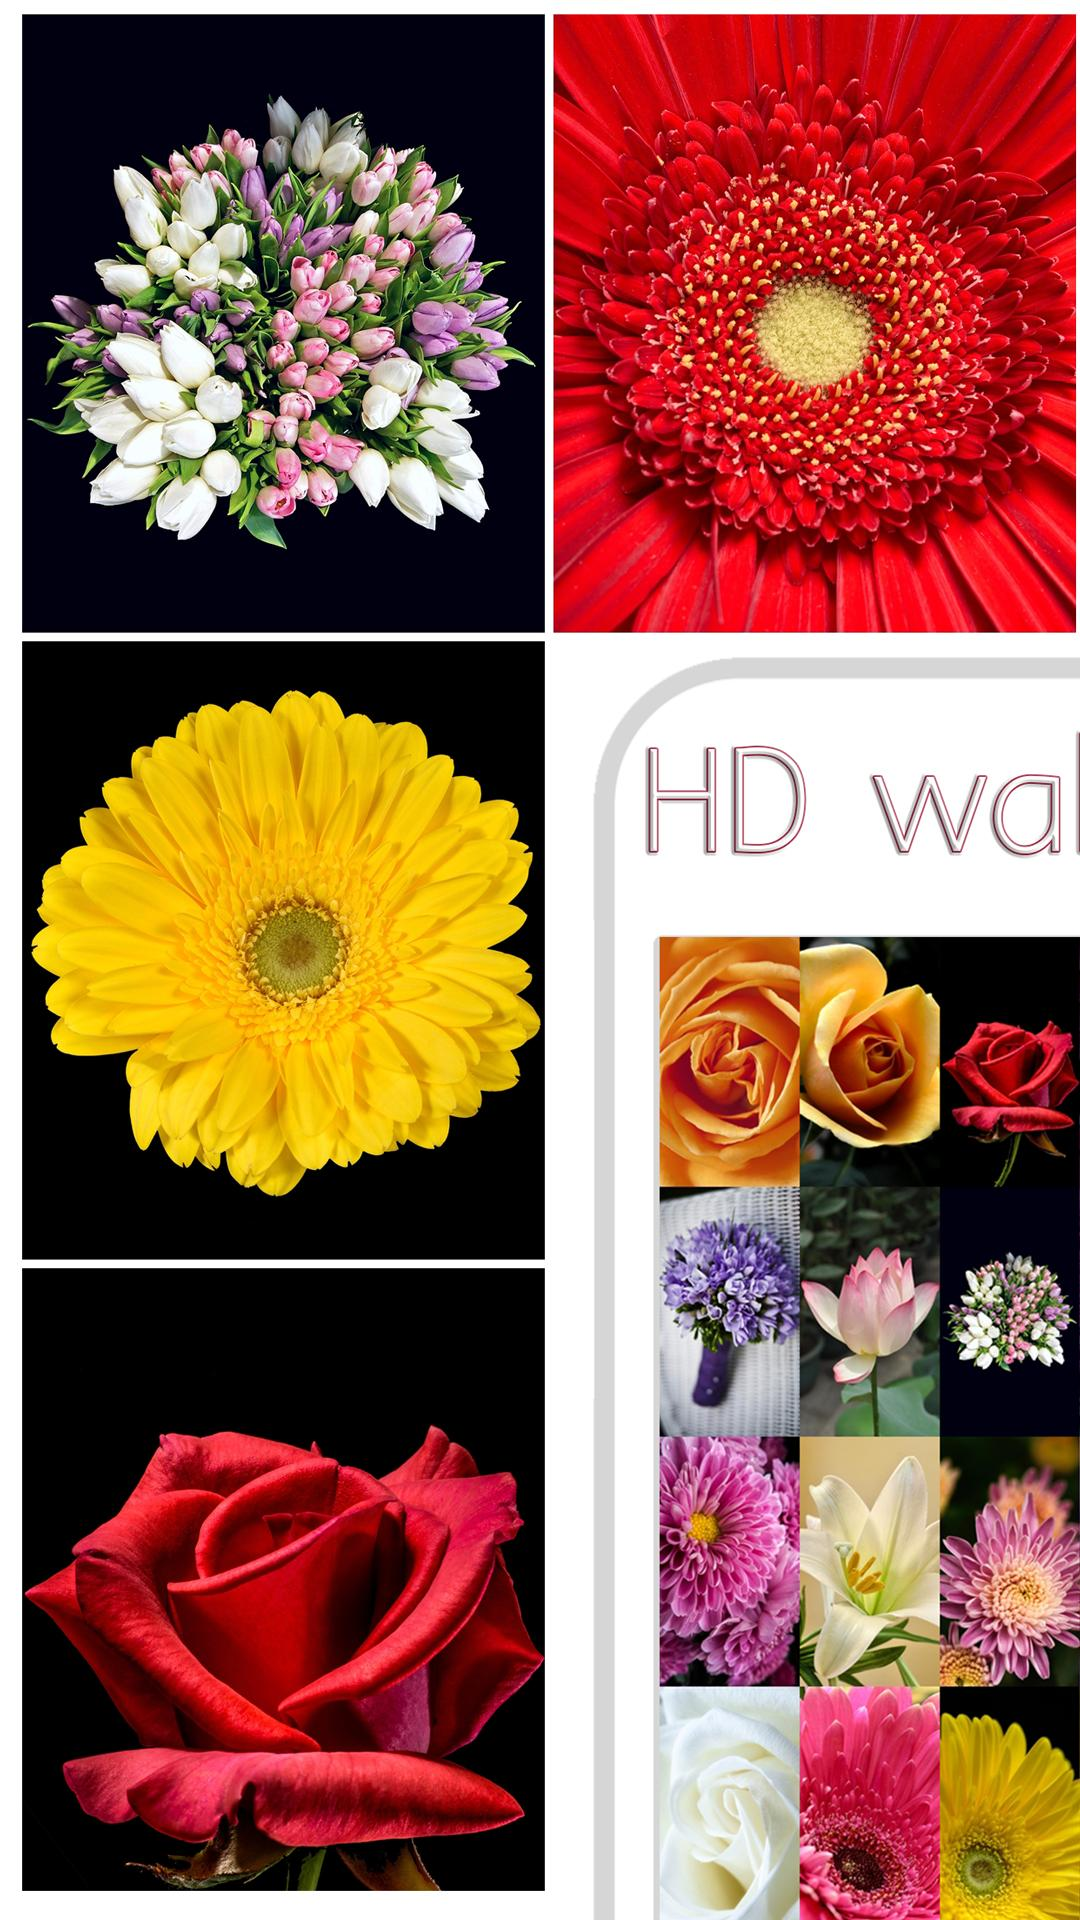 Download 1060+ Wallpaper Wa Indah Gratis Terbaik